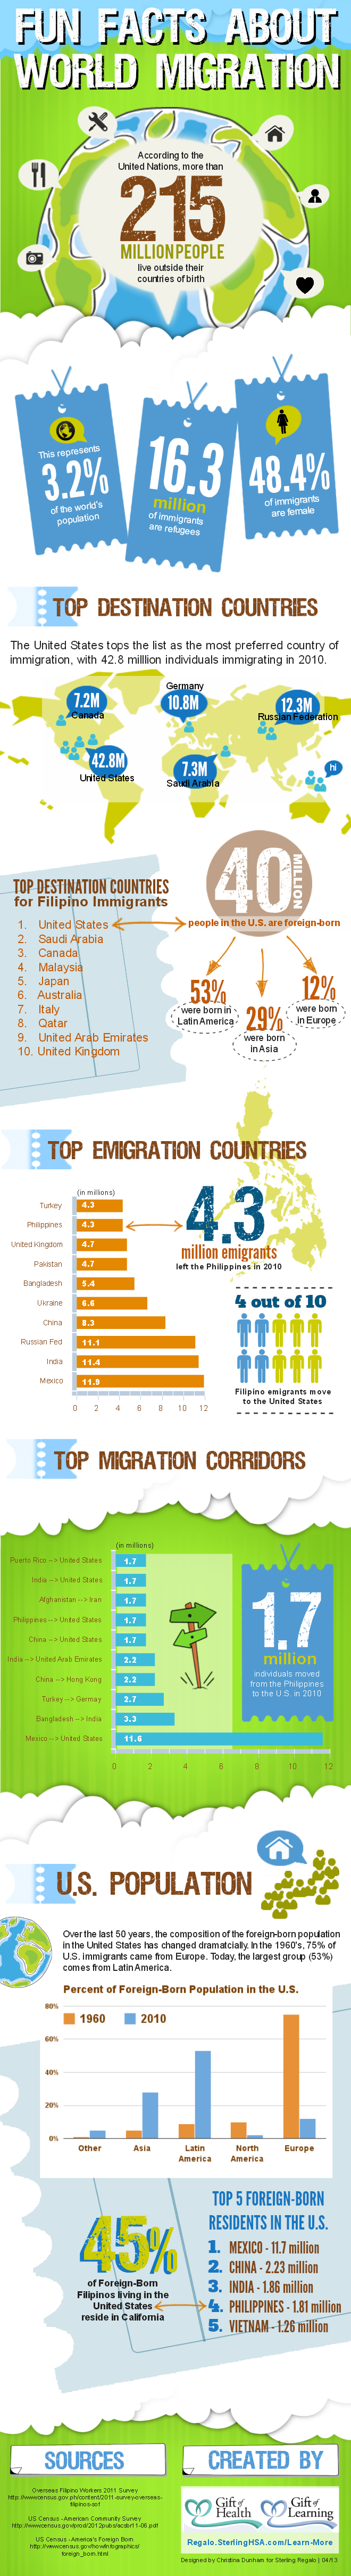 Fun Facts about World Migration and the Filipino Diaspora - Infographic by Sterling Regalo